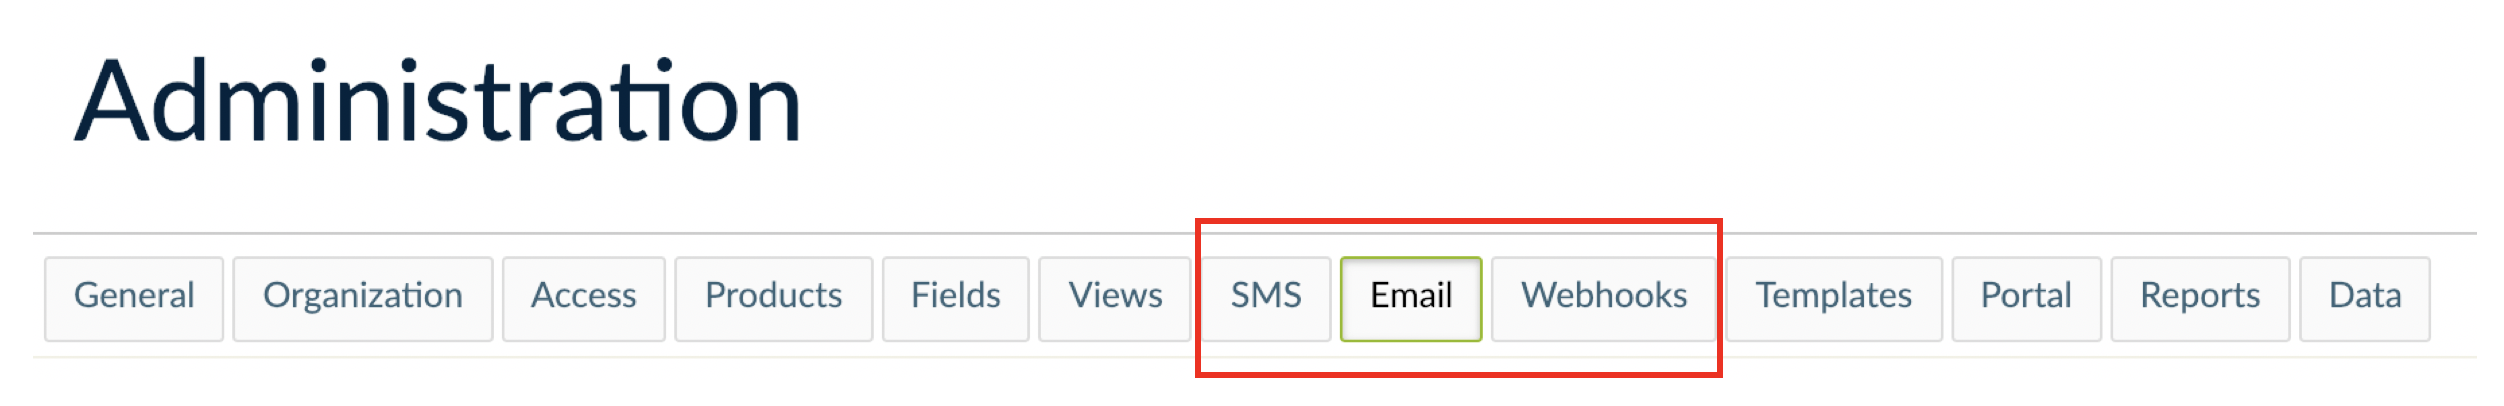 SMS, Email and Webhooks menu from where templates can be created